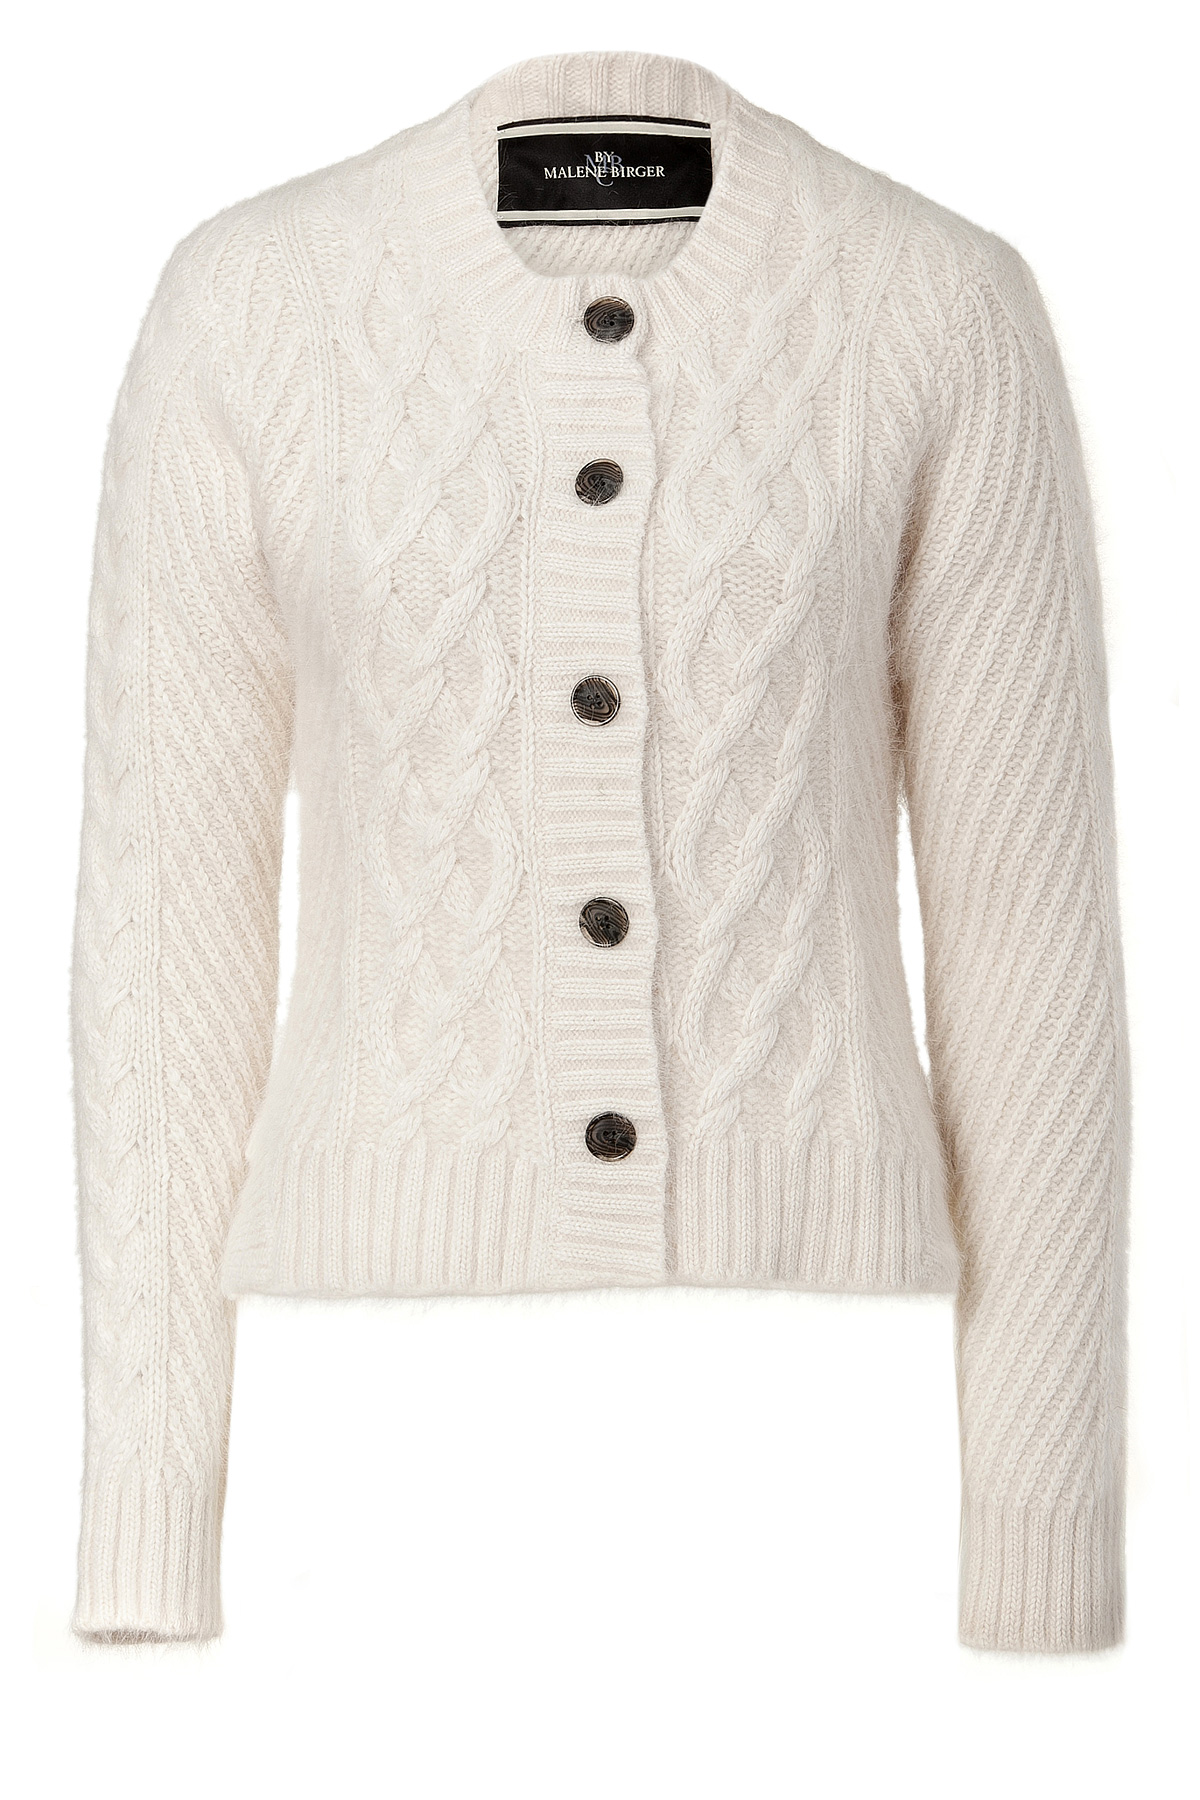 By malene birger Ivory Cable Knit Cardigan in White | Lyst